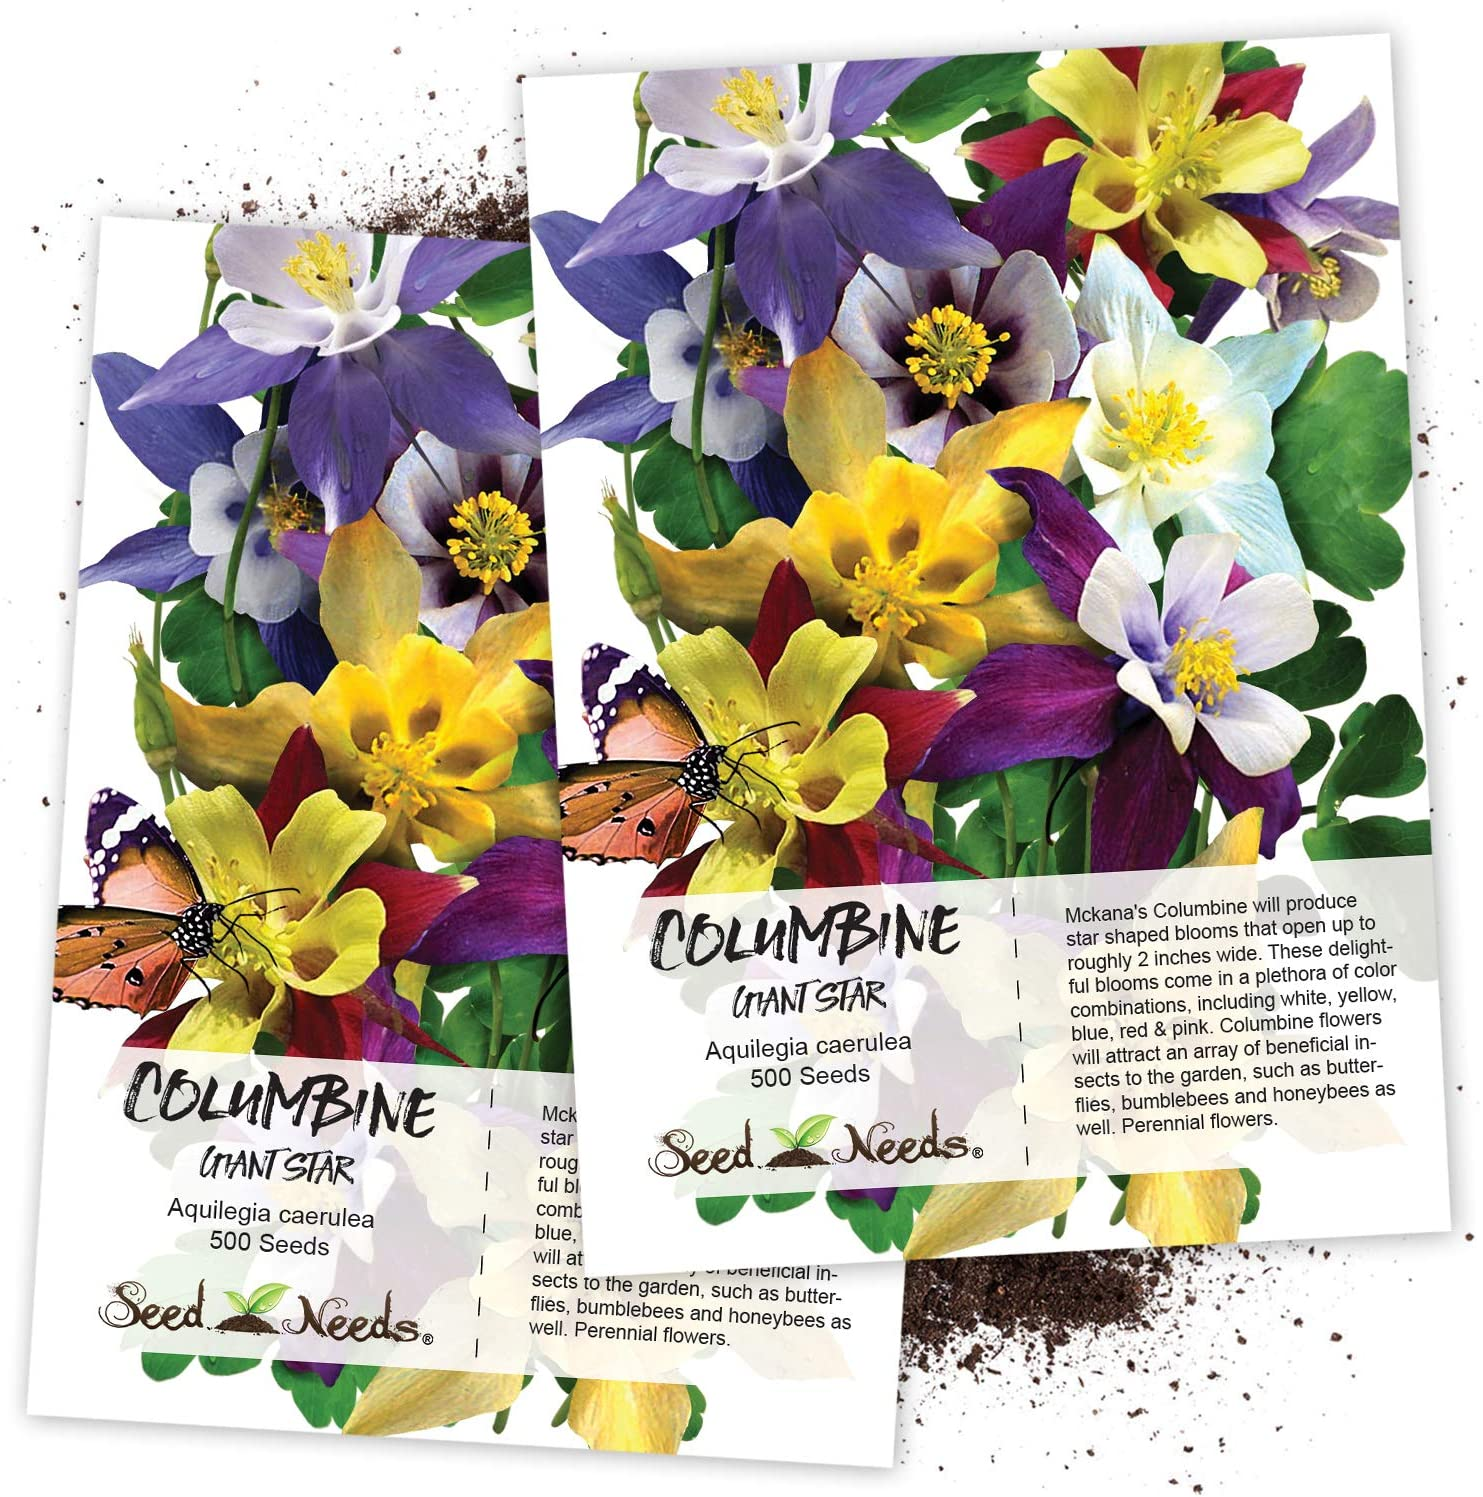 Amazon Com Seed Needs Giant Star Columbine Mix Aquilegia